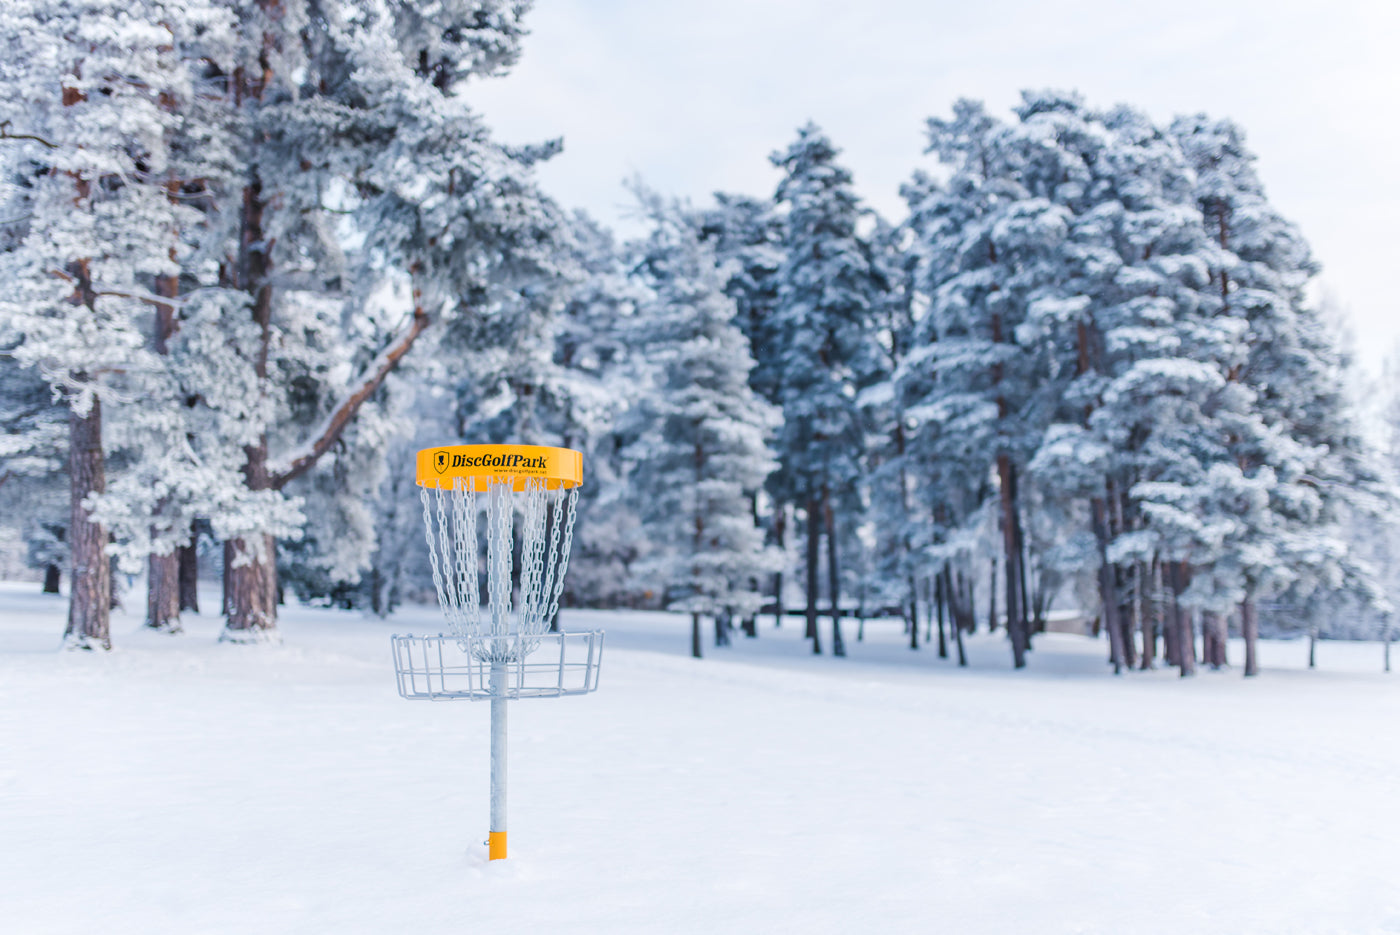 Snowy disc golf course